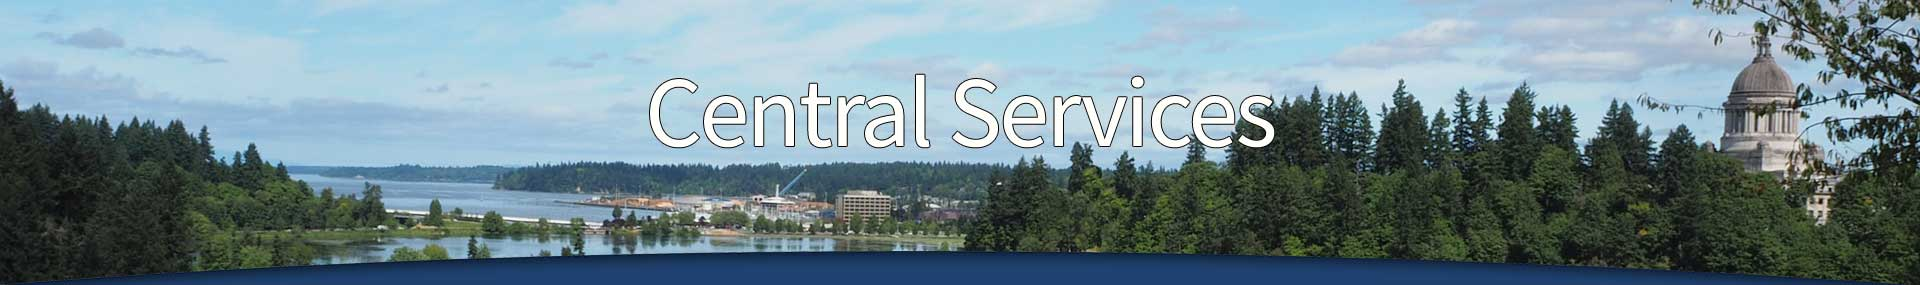 Central Services Department header - Click for home